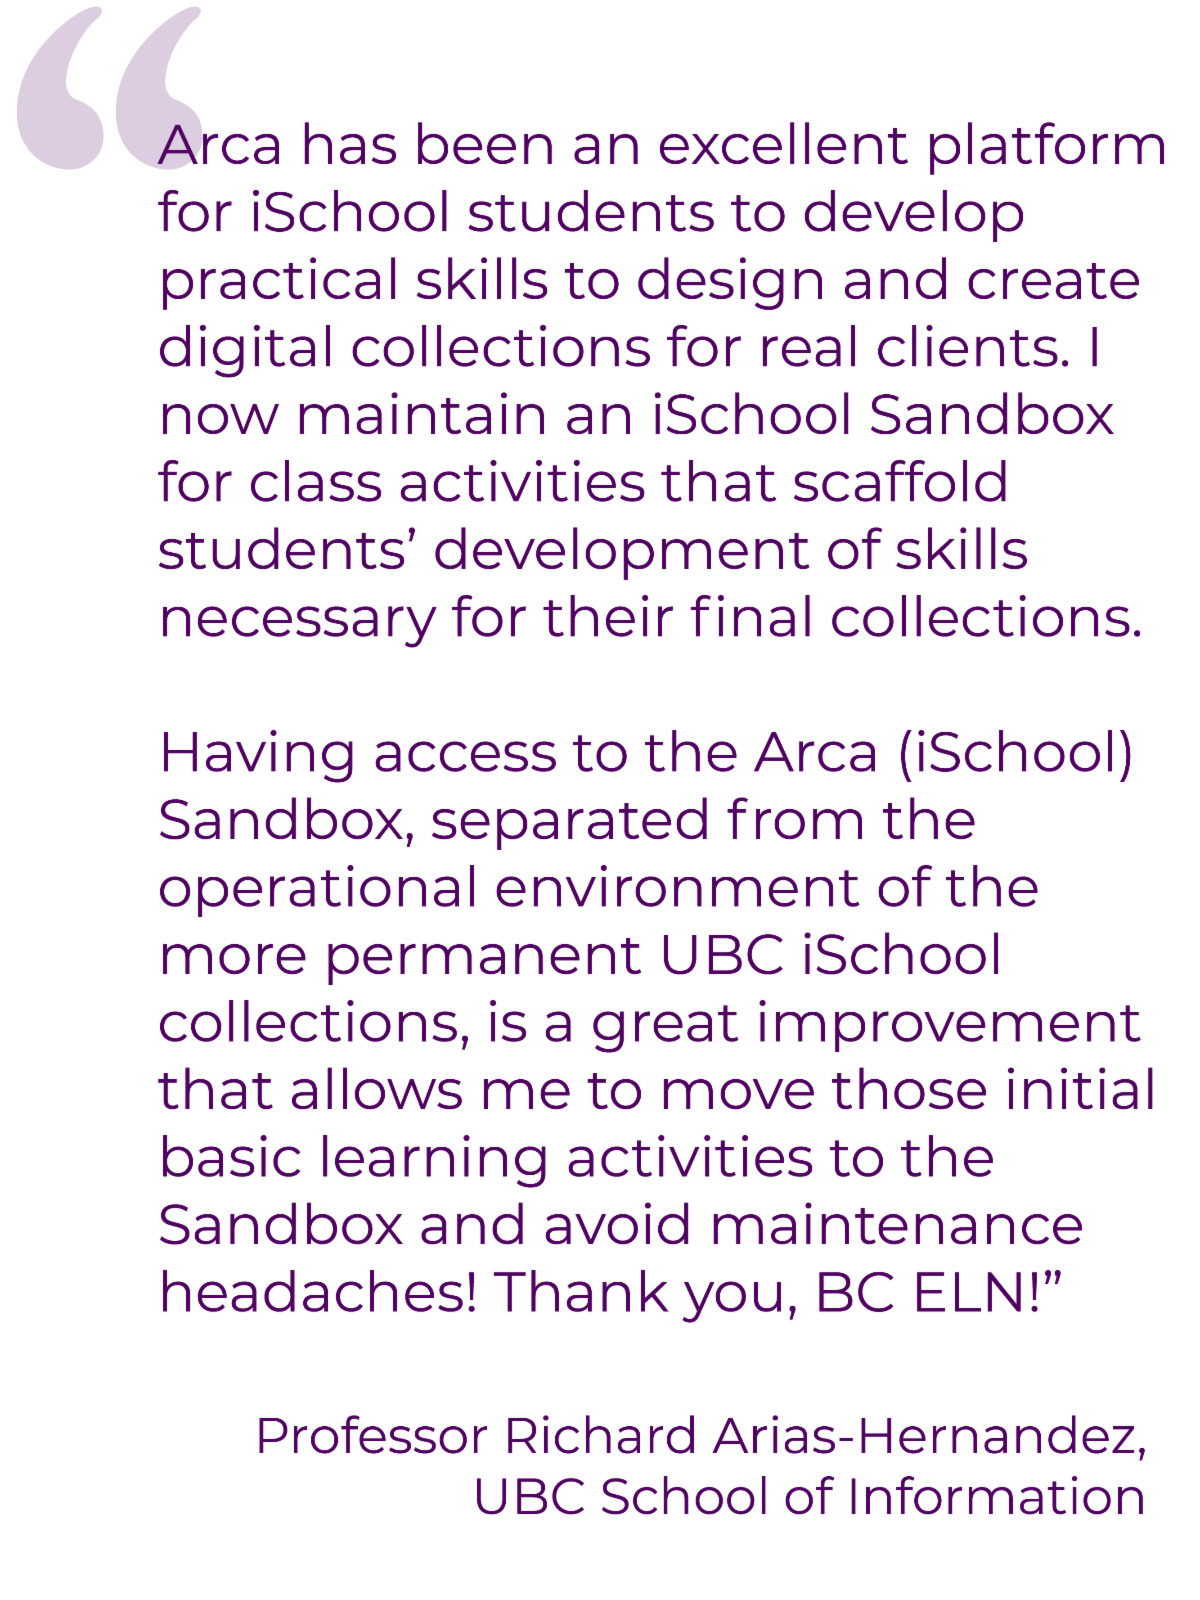 Quote from Professor Arias-Hernandez discussing how the Arca sandbox scaffolds student learning and thanking BC ELN.